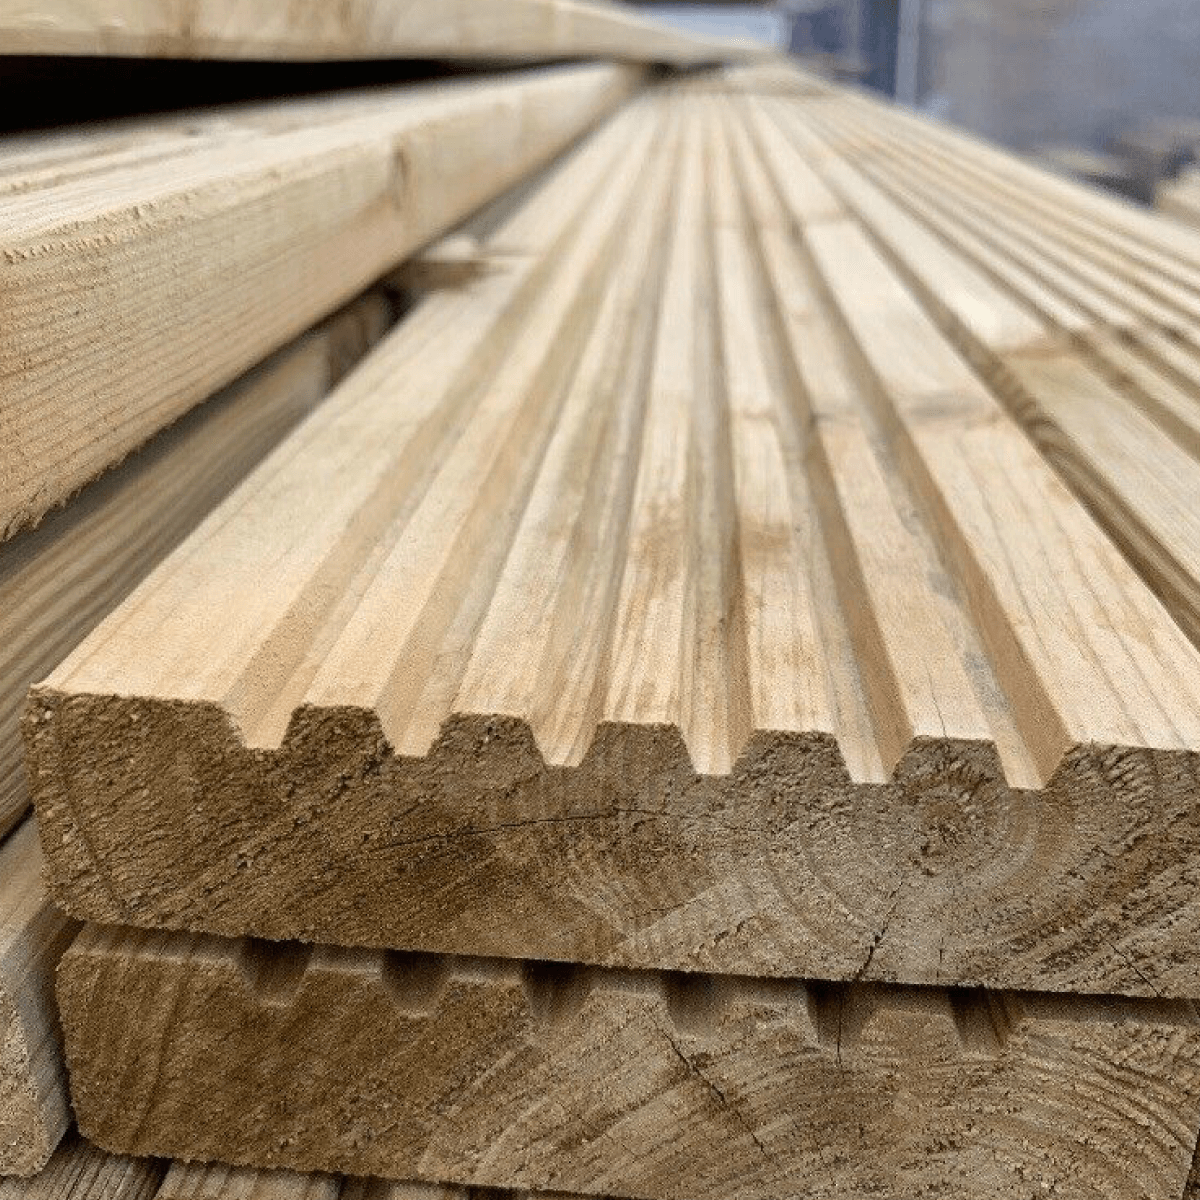 Treated Decking Board